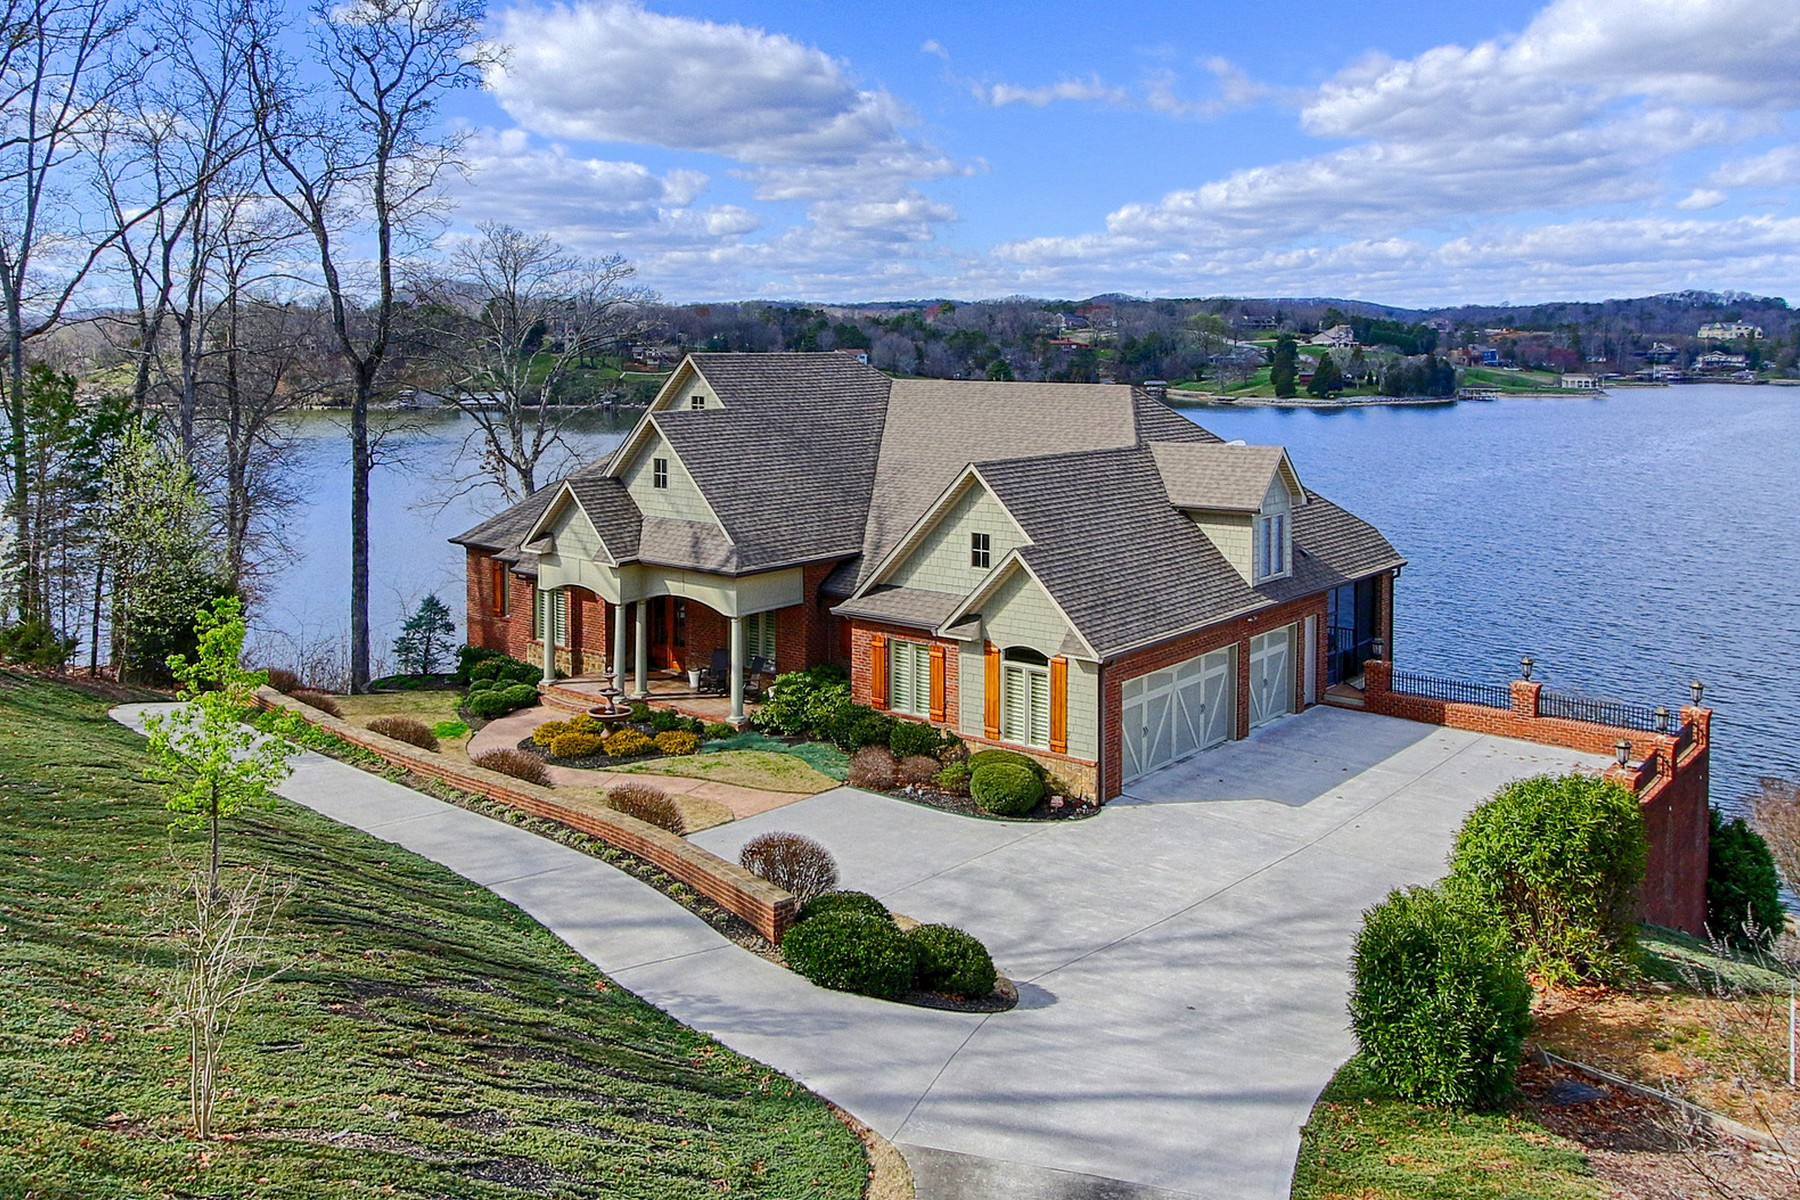 Single Family Home for Sale at Lakefront Watershaw Home with Stunning Views 643 Watershaw Drive Friendsville, Tennessee 37737 United States